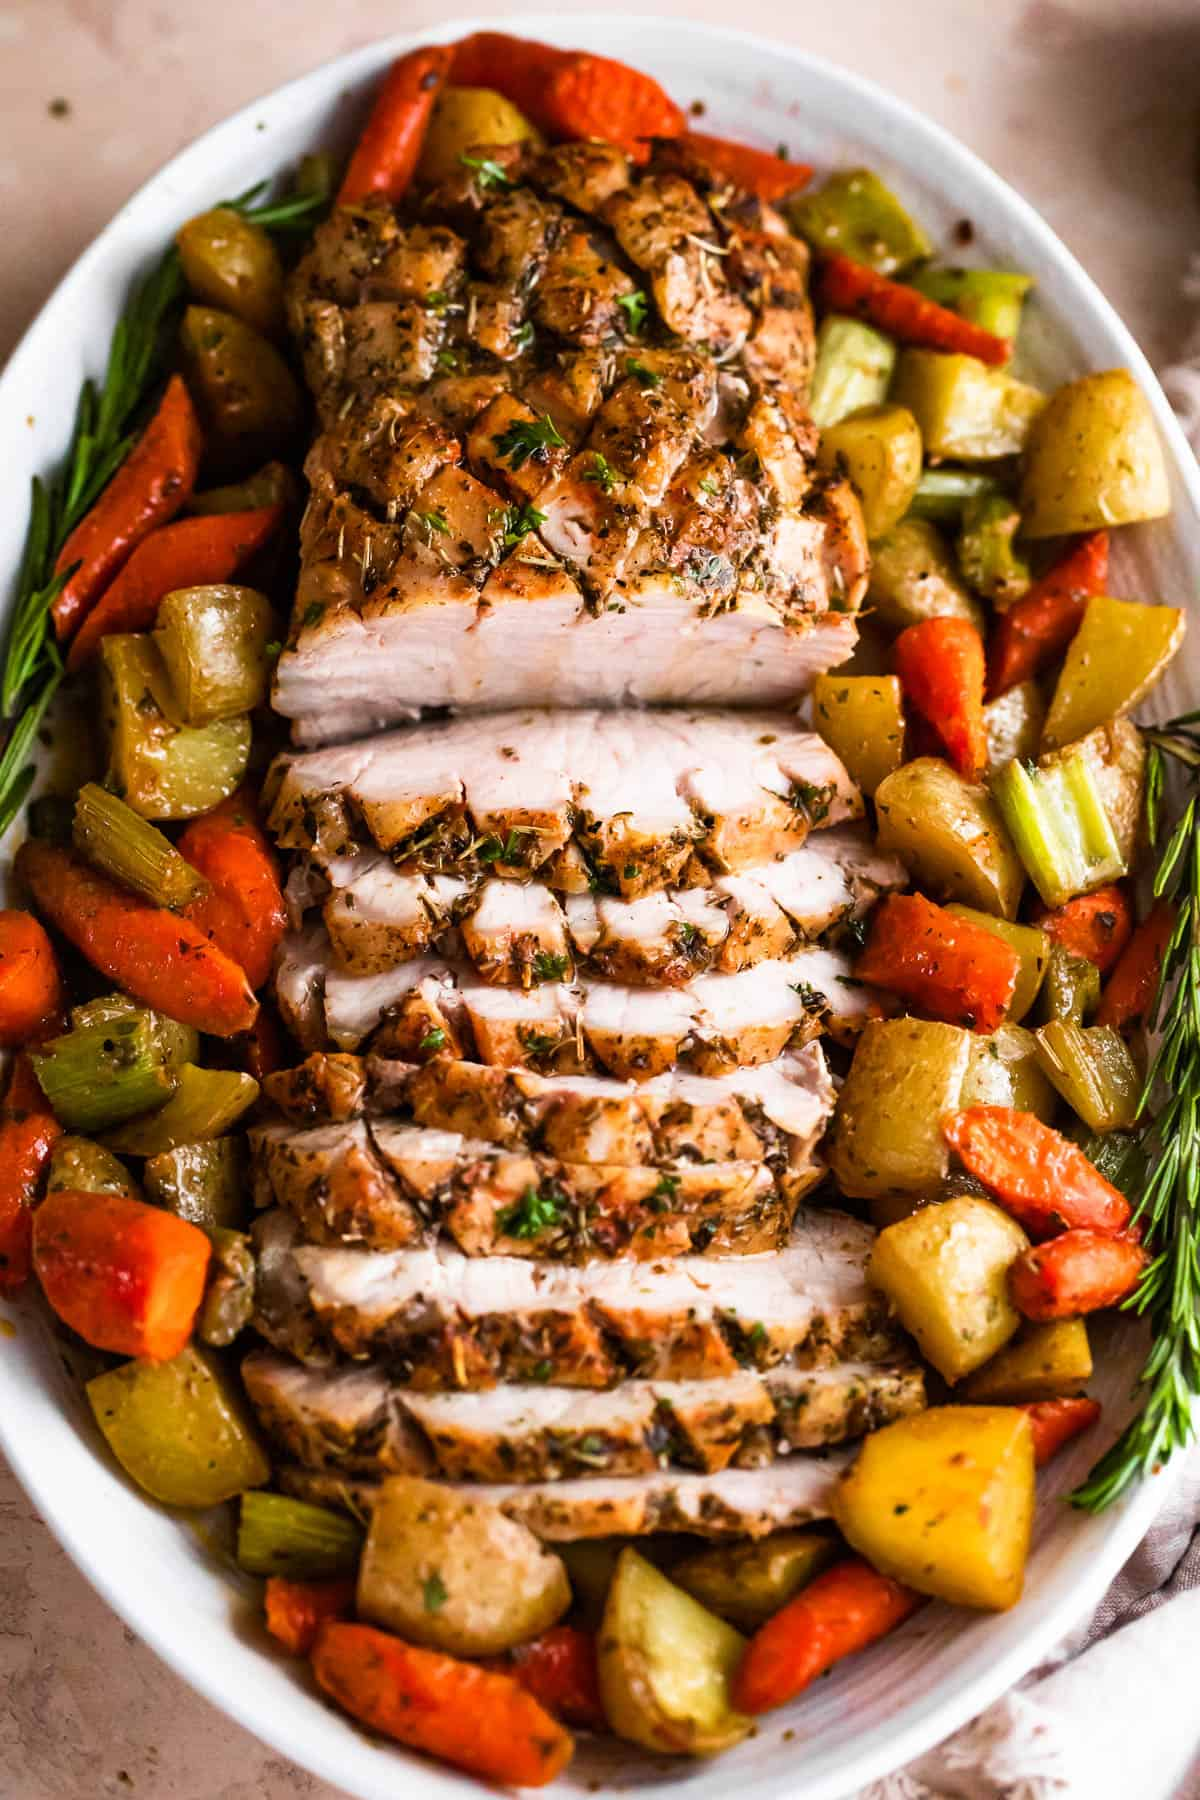 overhead shot of oval plate with cooked and sliced pork loin roast and roasted vegetables arranged around the roast